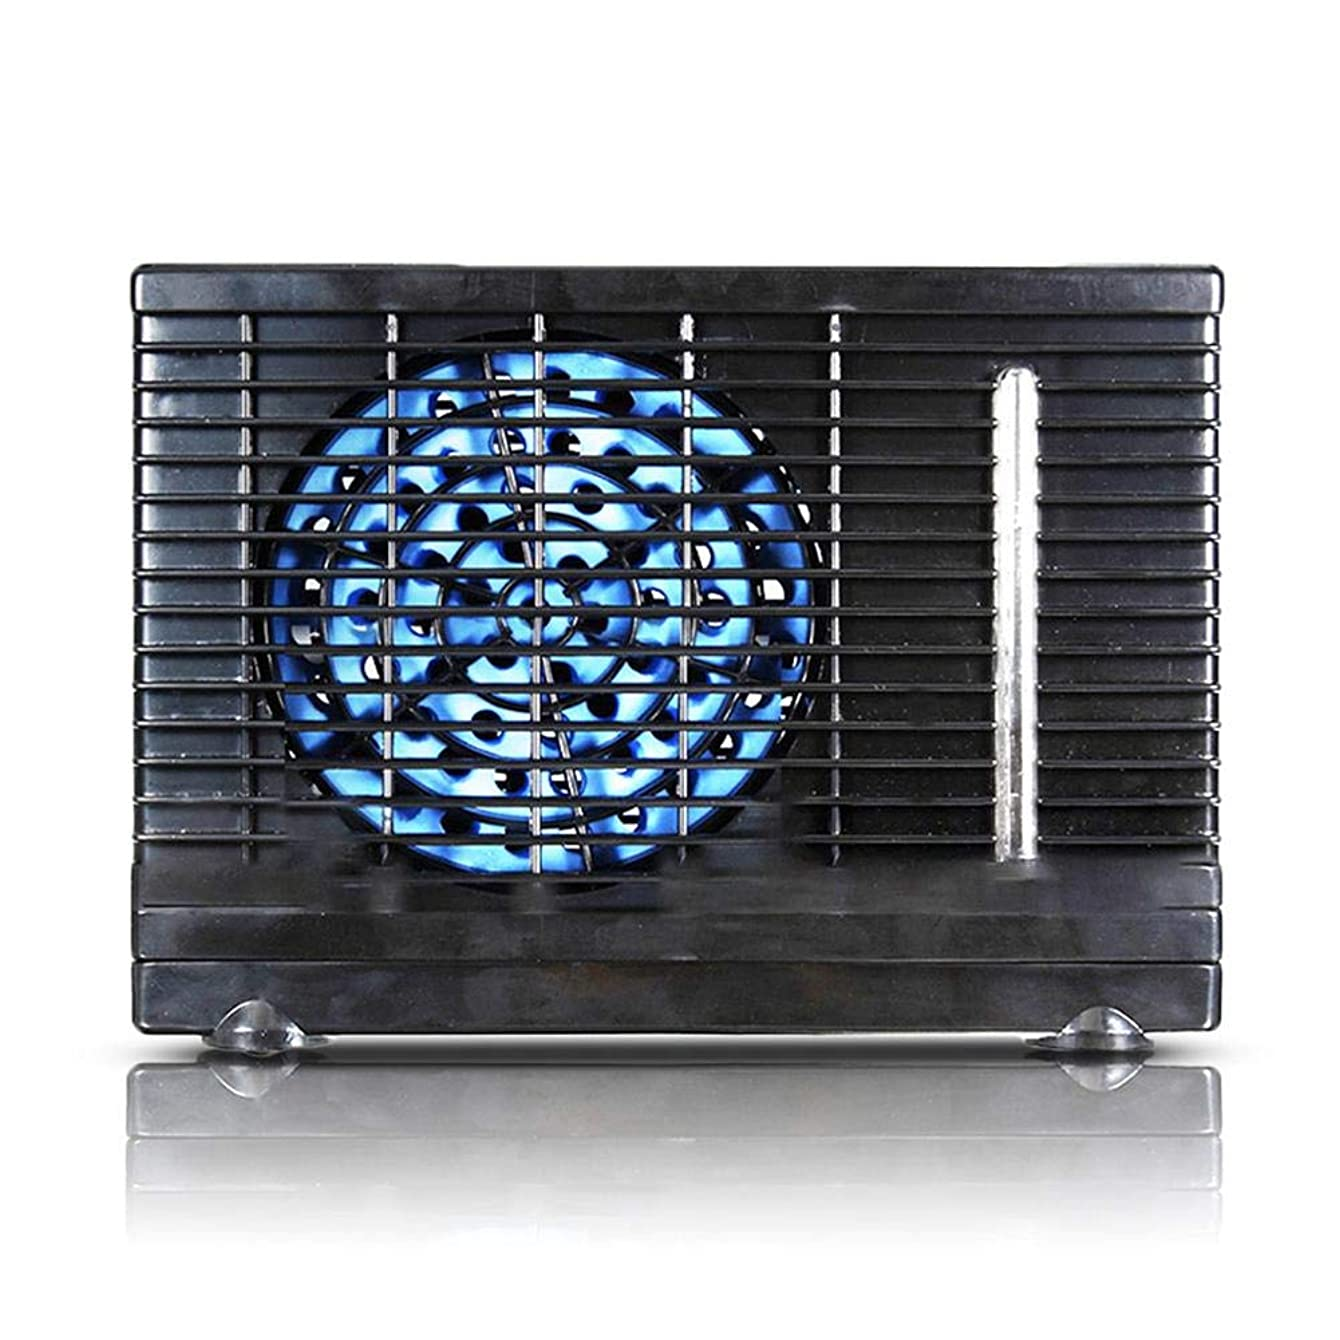 Portable Air Cooler,12V Auto Air Conditioner Fluoride-Free High-Low Speed Adjustable Fan Personal Cooler Ultra Compact Evaporative Coolers for Car, Home, Office, Camping